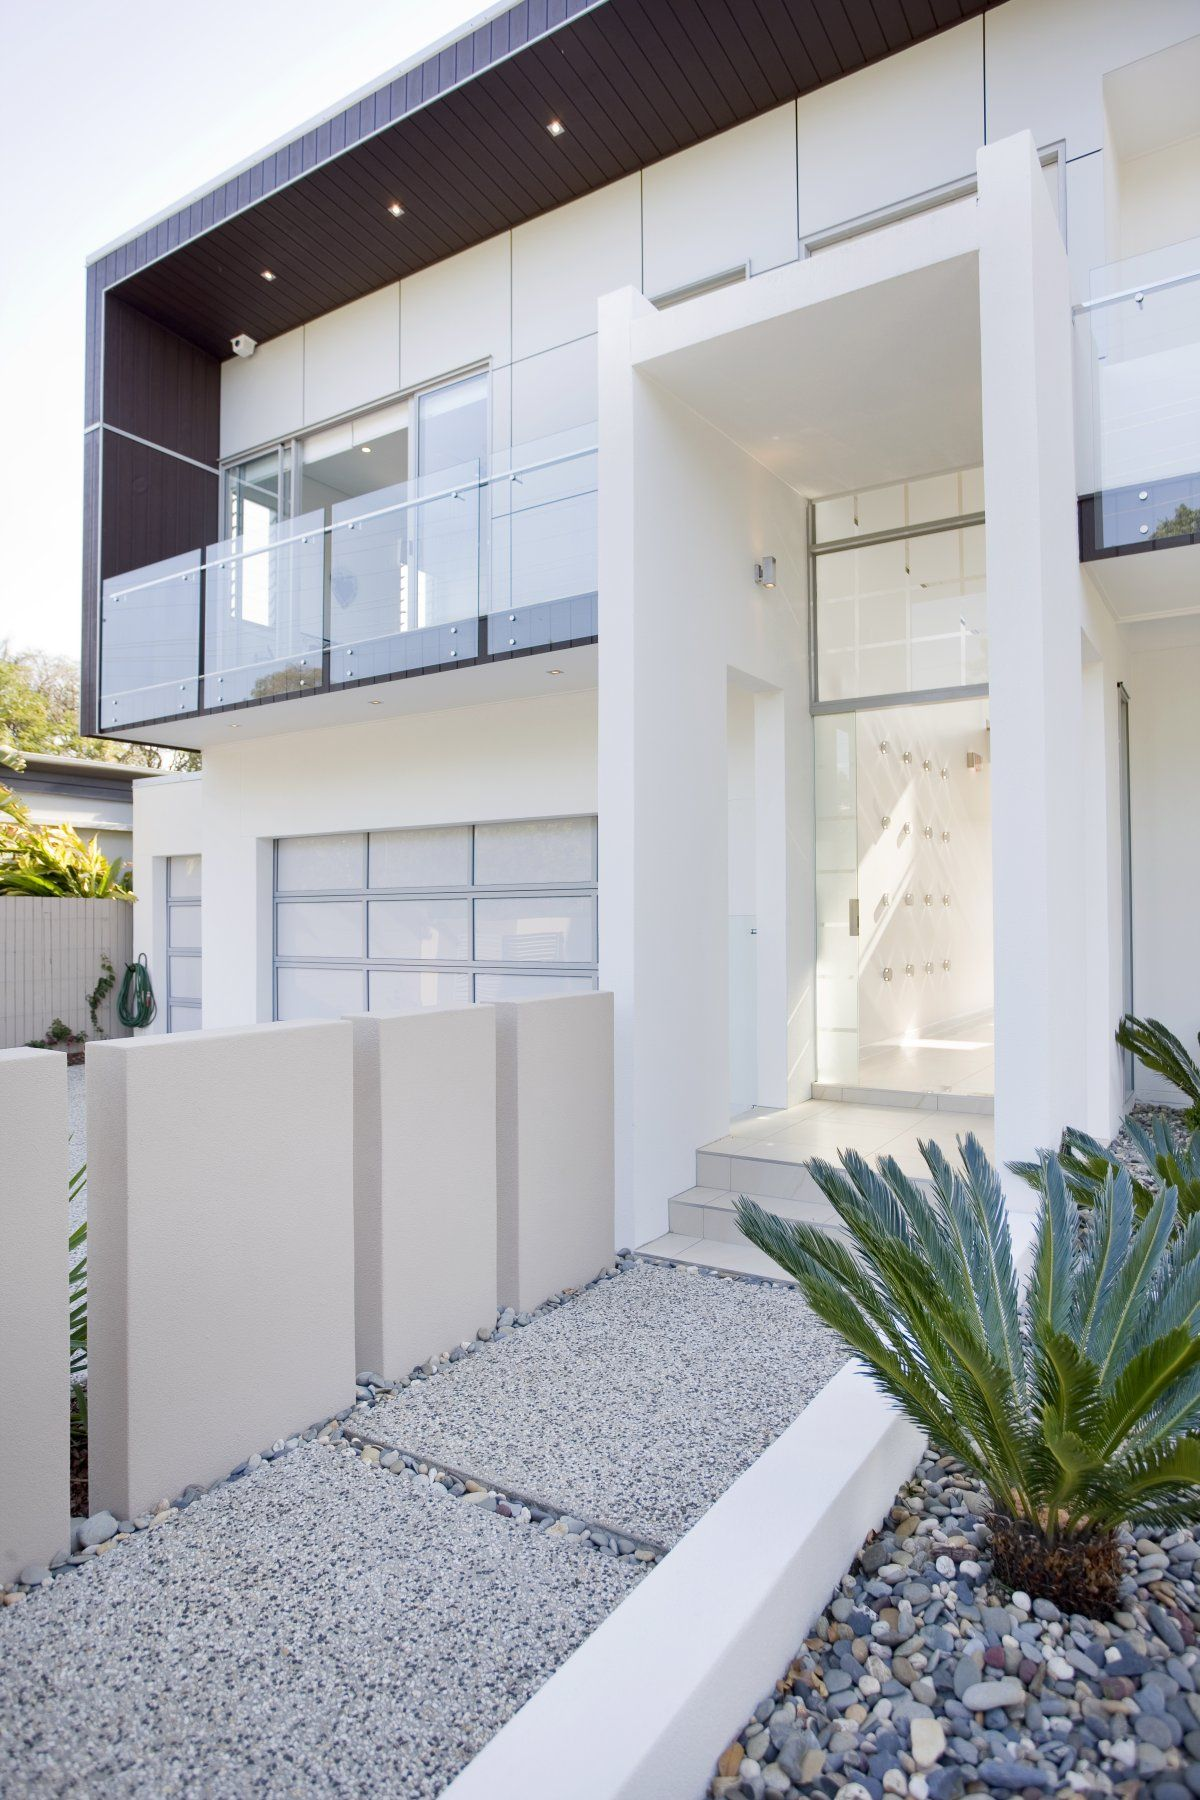 Entrances, stairs, architecture, facades, curb appeal, white, modern ...